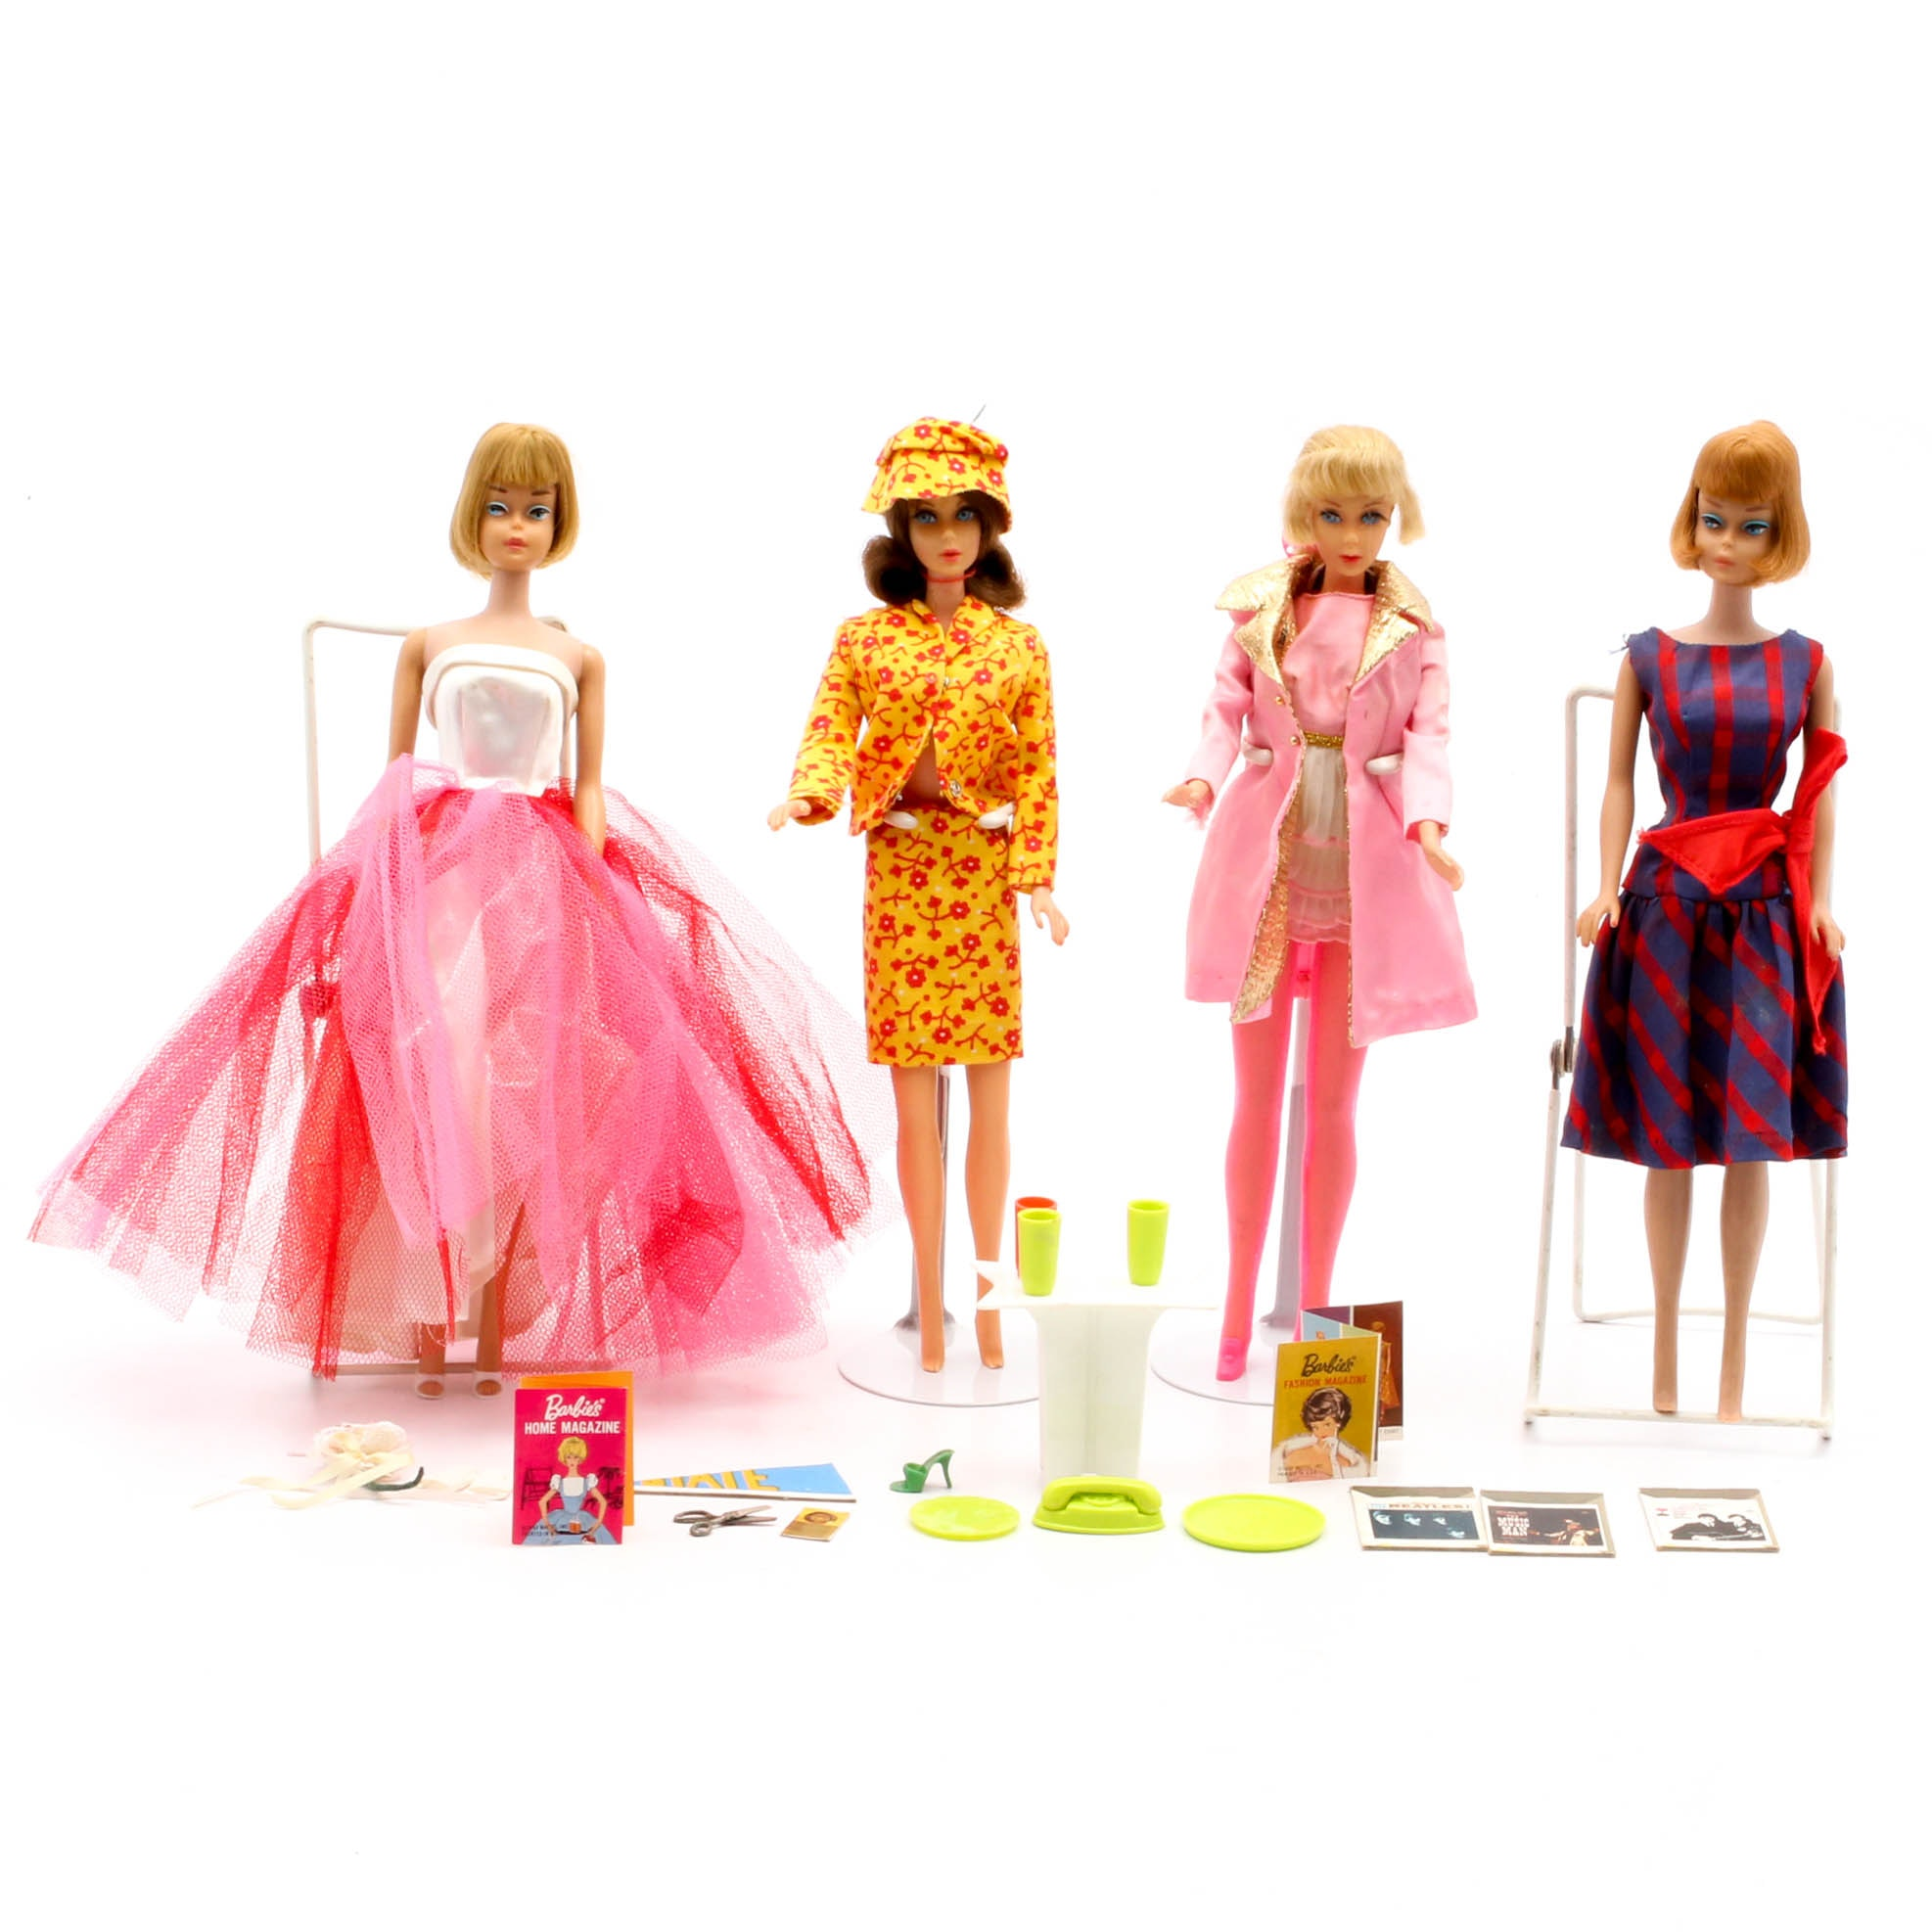 1960s Barbie Dolls and Accessories